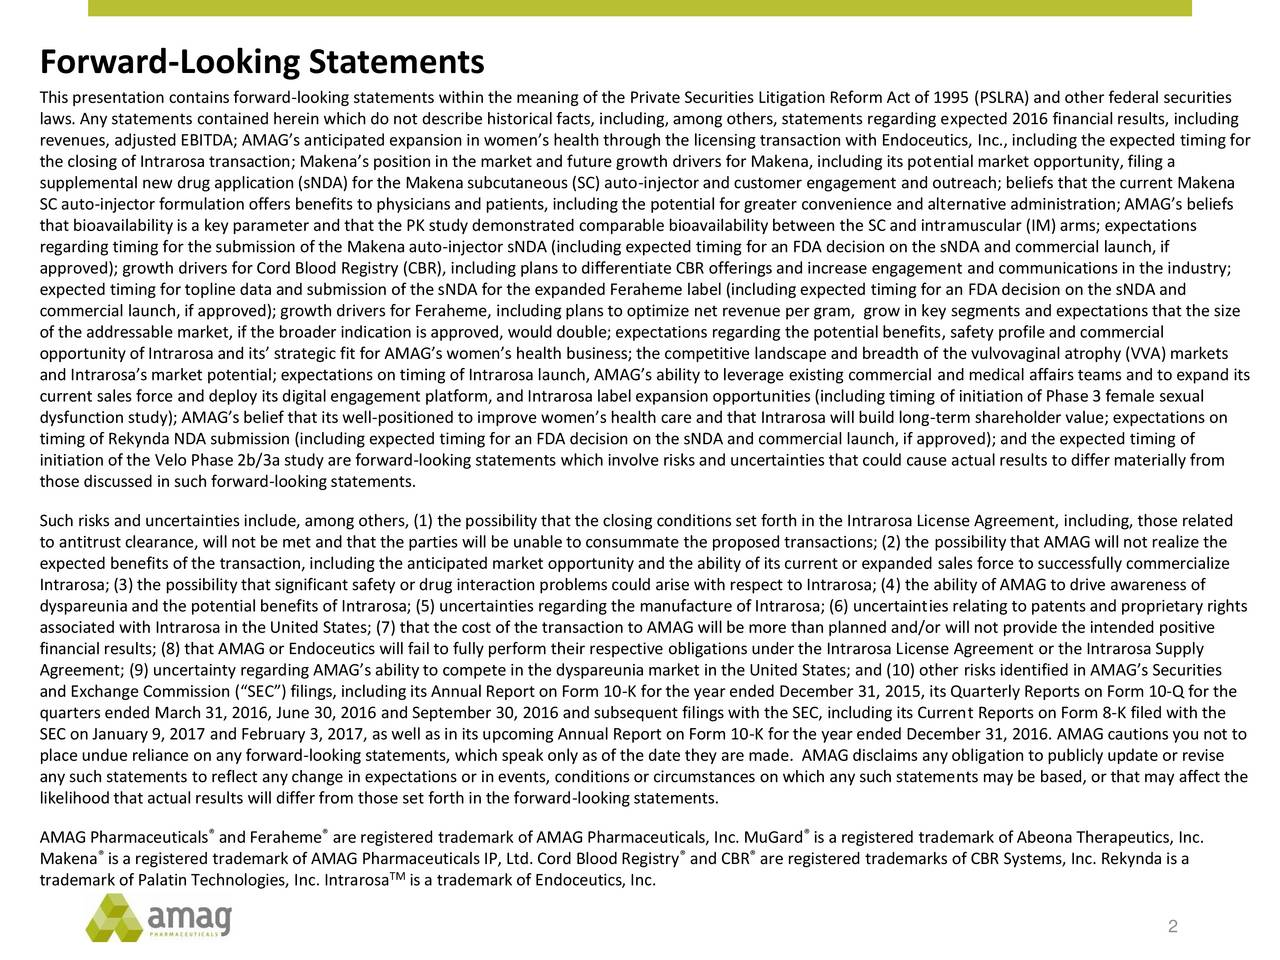 This presentation contains forward-looking statements within the meaning of the Private Securities Litigation Reform Act of 1995 (PSLRA) and other federal securities laws. Any statements contained herein which do not describe historical facts, including, among others, statements regarding expected 2016 financial results, including revenues, adjusted EBITDA; AMAGs anticipated expansion in womens health through the licensing transaction with Endoceutics, Inc., including the expected timing for the closing of Intrarosa transaction; Makenas position in the market and future growth drivers for Makena, including its potential market opportunity, filing a supplemental new drug application (sNDA) for the Makena subcutaneous (SC) auto-injector and customer engagement and outreach; beliefs that the current Makena SC auto-injector formulation offers benefits to physicians and patients, including the potential for greater convenience and alternative administration; AMAGs beliefs that bioavailability is a key parameter and that the PK study demonstrated comparable bioavailability between the SC and intramuscular (IM) arms; expectations regarding timing for the submission of the Makena auto-injector sNDA (including expected timing for an FDA decision on the sNDA and commercial launch, if approved); growth drivers for Cord Blood Registry (CBR), including plans to differentiate CBR offerings and increase engagement and communications in the industry; expected timing for topline data and submission of the sNDA for the expanded Feraheme label (including expected timing for an FDA decision on the sNDA and commercial launch, if approved); growth drivers for Feraheme, including plans to optimize net revenue per gram, grow in key segments and expectations that the size of the addressable market, if the broader indication is approved, would double; expectations regarding the potential benefits, safety profile and commercial opportunity of Intrarosa and its strategic fit for AMAGs womens health business; the competitive landscape and breadth of the vulvovaginal atrophy (VVA) markets and Intrarosas market potential; expectations on timing of Intrarosa launch, AMAGs ability to leverage existing commercial and medical affairs teams and to expand its current sales force and deploy its digital engagement platform, and Intrarosa label expansion opportunities (including timing of initiation of Phase 3 female sexual dysfunction study); AMAGs belief that its well-positioned to improve womens health care and that Intrarosa will build long-term shareholder value; expectations on timing of Rekynda NDA submission (including expected timing for an FDA decision on the sNDA and commercial launch, if approved); and the expected timing of initiation of the Velo Phase 2b/3a study are forward-looking statements which involve risks and uncertainties that could cause actual results to differ materially from those discussed in such forward-looking statements. Such risks and uncertainties include, among others, (1) the possibility that the closing conditions set forth in the Intrarosa License Agreement, including, those related to antitrust clearance, will not be met and that the parties will be unable to consummate the proposed transactions; (2) the possibility that AMAG will not realize the expected benefits of the transaction, including the anticipated market opportunity and the ability of its current or expanded sales force to successfully commercialize Intrarosa; (3) the possibility that significant safety or drug interaction problems could arise with respect to Intrarosa; (4) the ability of AMAG to drive awareness of dyspareunia and the potential benefits of Intrarosa; (5) uncertainties regarding the manufacture of Intrarosa; (6) uncertainties relating to patents and proprietary rights associated with Intrarosa in the United States; (7) that the cost of the transaction to AMAG will be more than planned and/or will not provide the intended positive financial results; (8) that AMAG or Endoceutics will fail to fully perform their respective obligations under the Intrarosa License Agreement or the Intrarosa Supply Agreement; (9) uncertainty regarding AMAGs ability to compete in the dyspareunia market in the United States; and (10) other risks identified in AMAGs Securities and Exchange Commission (SEC) filings, including its Annual Report on Form 10-K for the year ended December 31, 2015, its Quarterly Reports on Form 10-Q for the quarters ended March 31, 2016, June 30, 2016 and September 30, 2016 and subsequent filings with the SEC, including its Current Reports on Form 8-K filed with the SEC on January 9, 2017 and February 3, 2017, as well as in its upcoming Annual Report on Form 10-K for the year ended December 31, 2016. AMAG cautions you not to place undue reliance on any forward-looking statements, which speak only as of the date they are made. AMAG disclaims any obligation to publicly update or revise any such statements to reflect any change in expectations or in events, conditions or circumstances on which any such statements may be based, or that may affect the likelihood that actual results will differ from those set forth in the forward-looking statements. AMAG Pharmaceuticals and Feraheme are registered trademark of AMAG Pharmaceuticals, Inc. MuGard is a registered trademark of Abeona Therapeutics, Inc. Makena is a registered trademark of AMAG Pharmaceuticals IP, Ltd. Cord Blood Registry and CBR are registered trademarks of CBR Systems, Inc. Rekynda is a trademark of Palatin Technologies, Inc. Intrarosa TMis a trademark of Endoceutics, Inc. 2